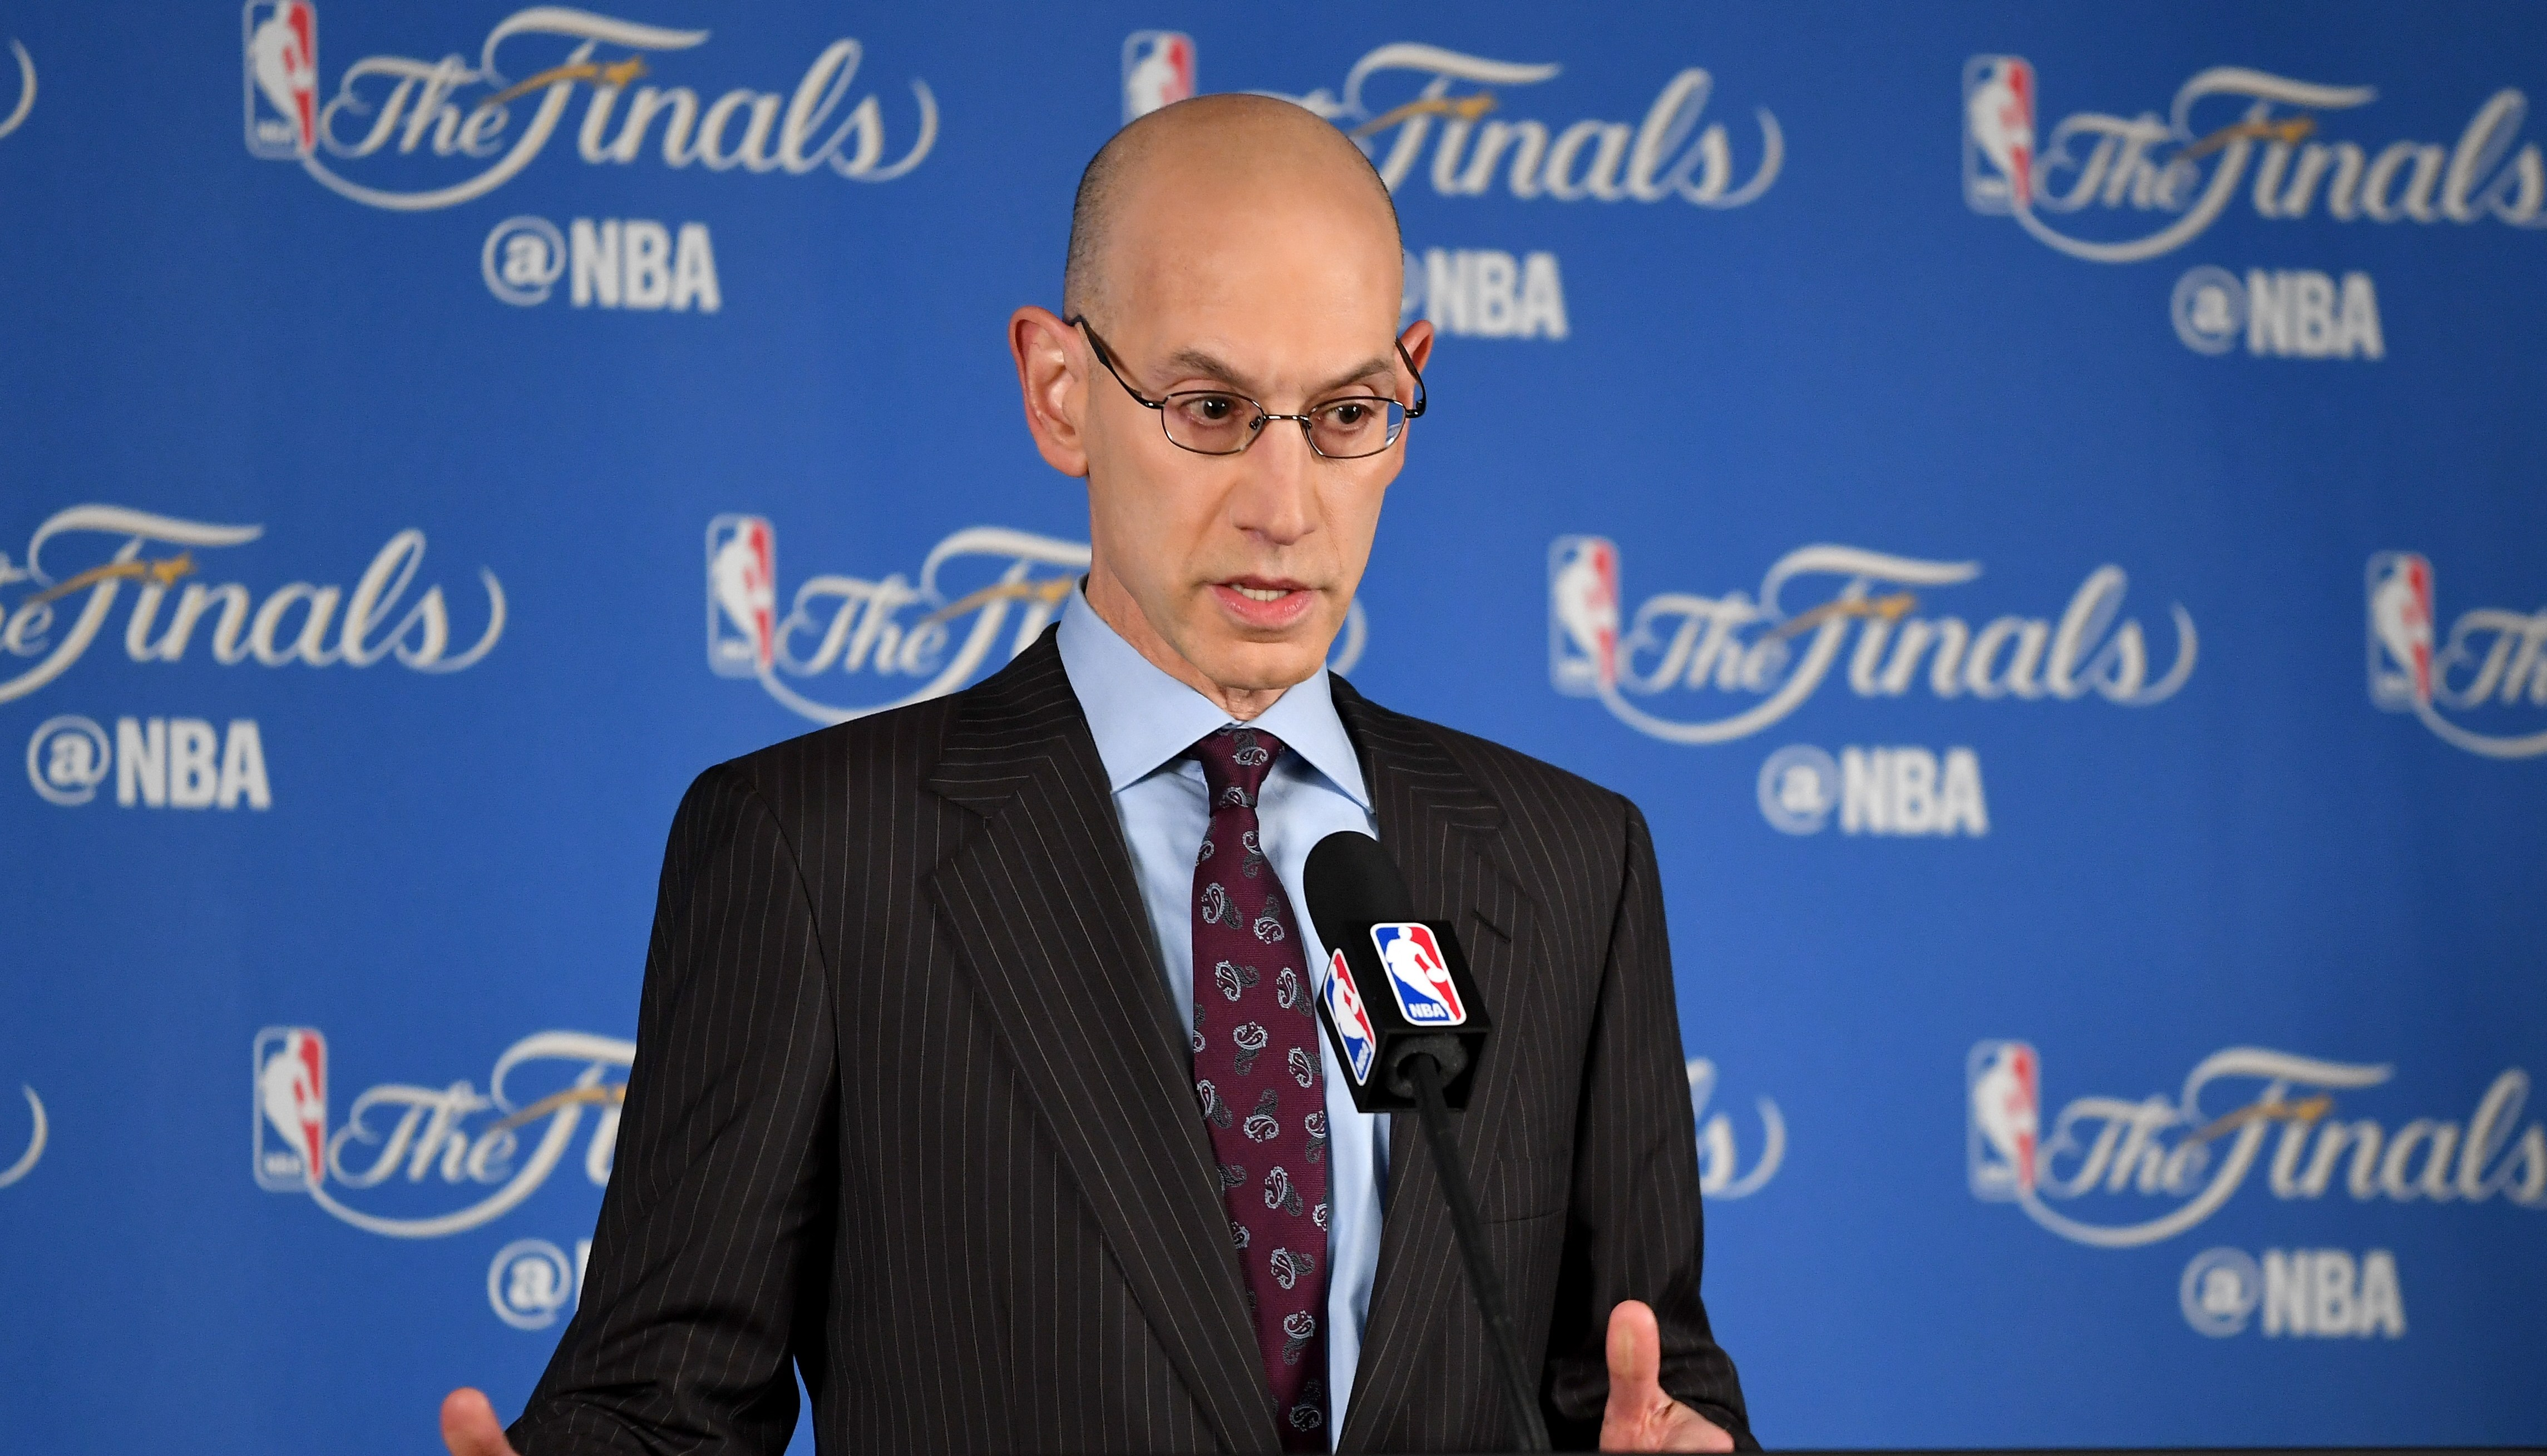 NBA Commissioner Adam Silver Press Conference